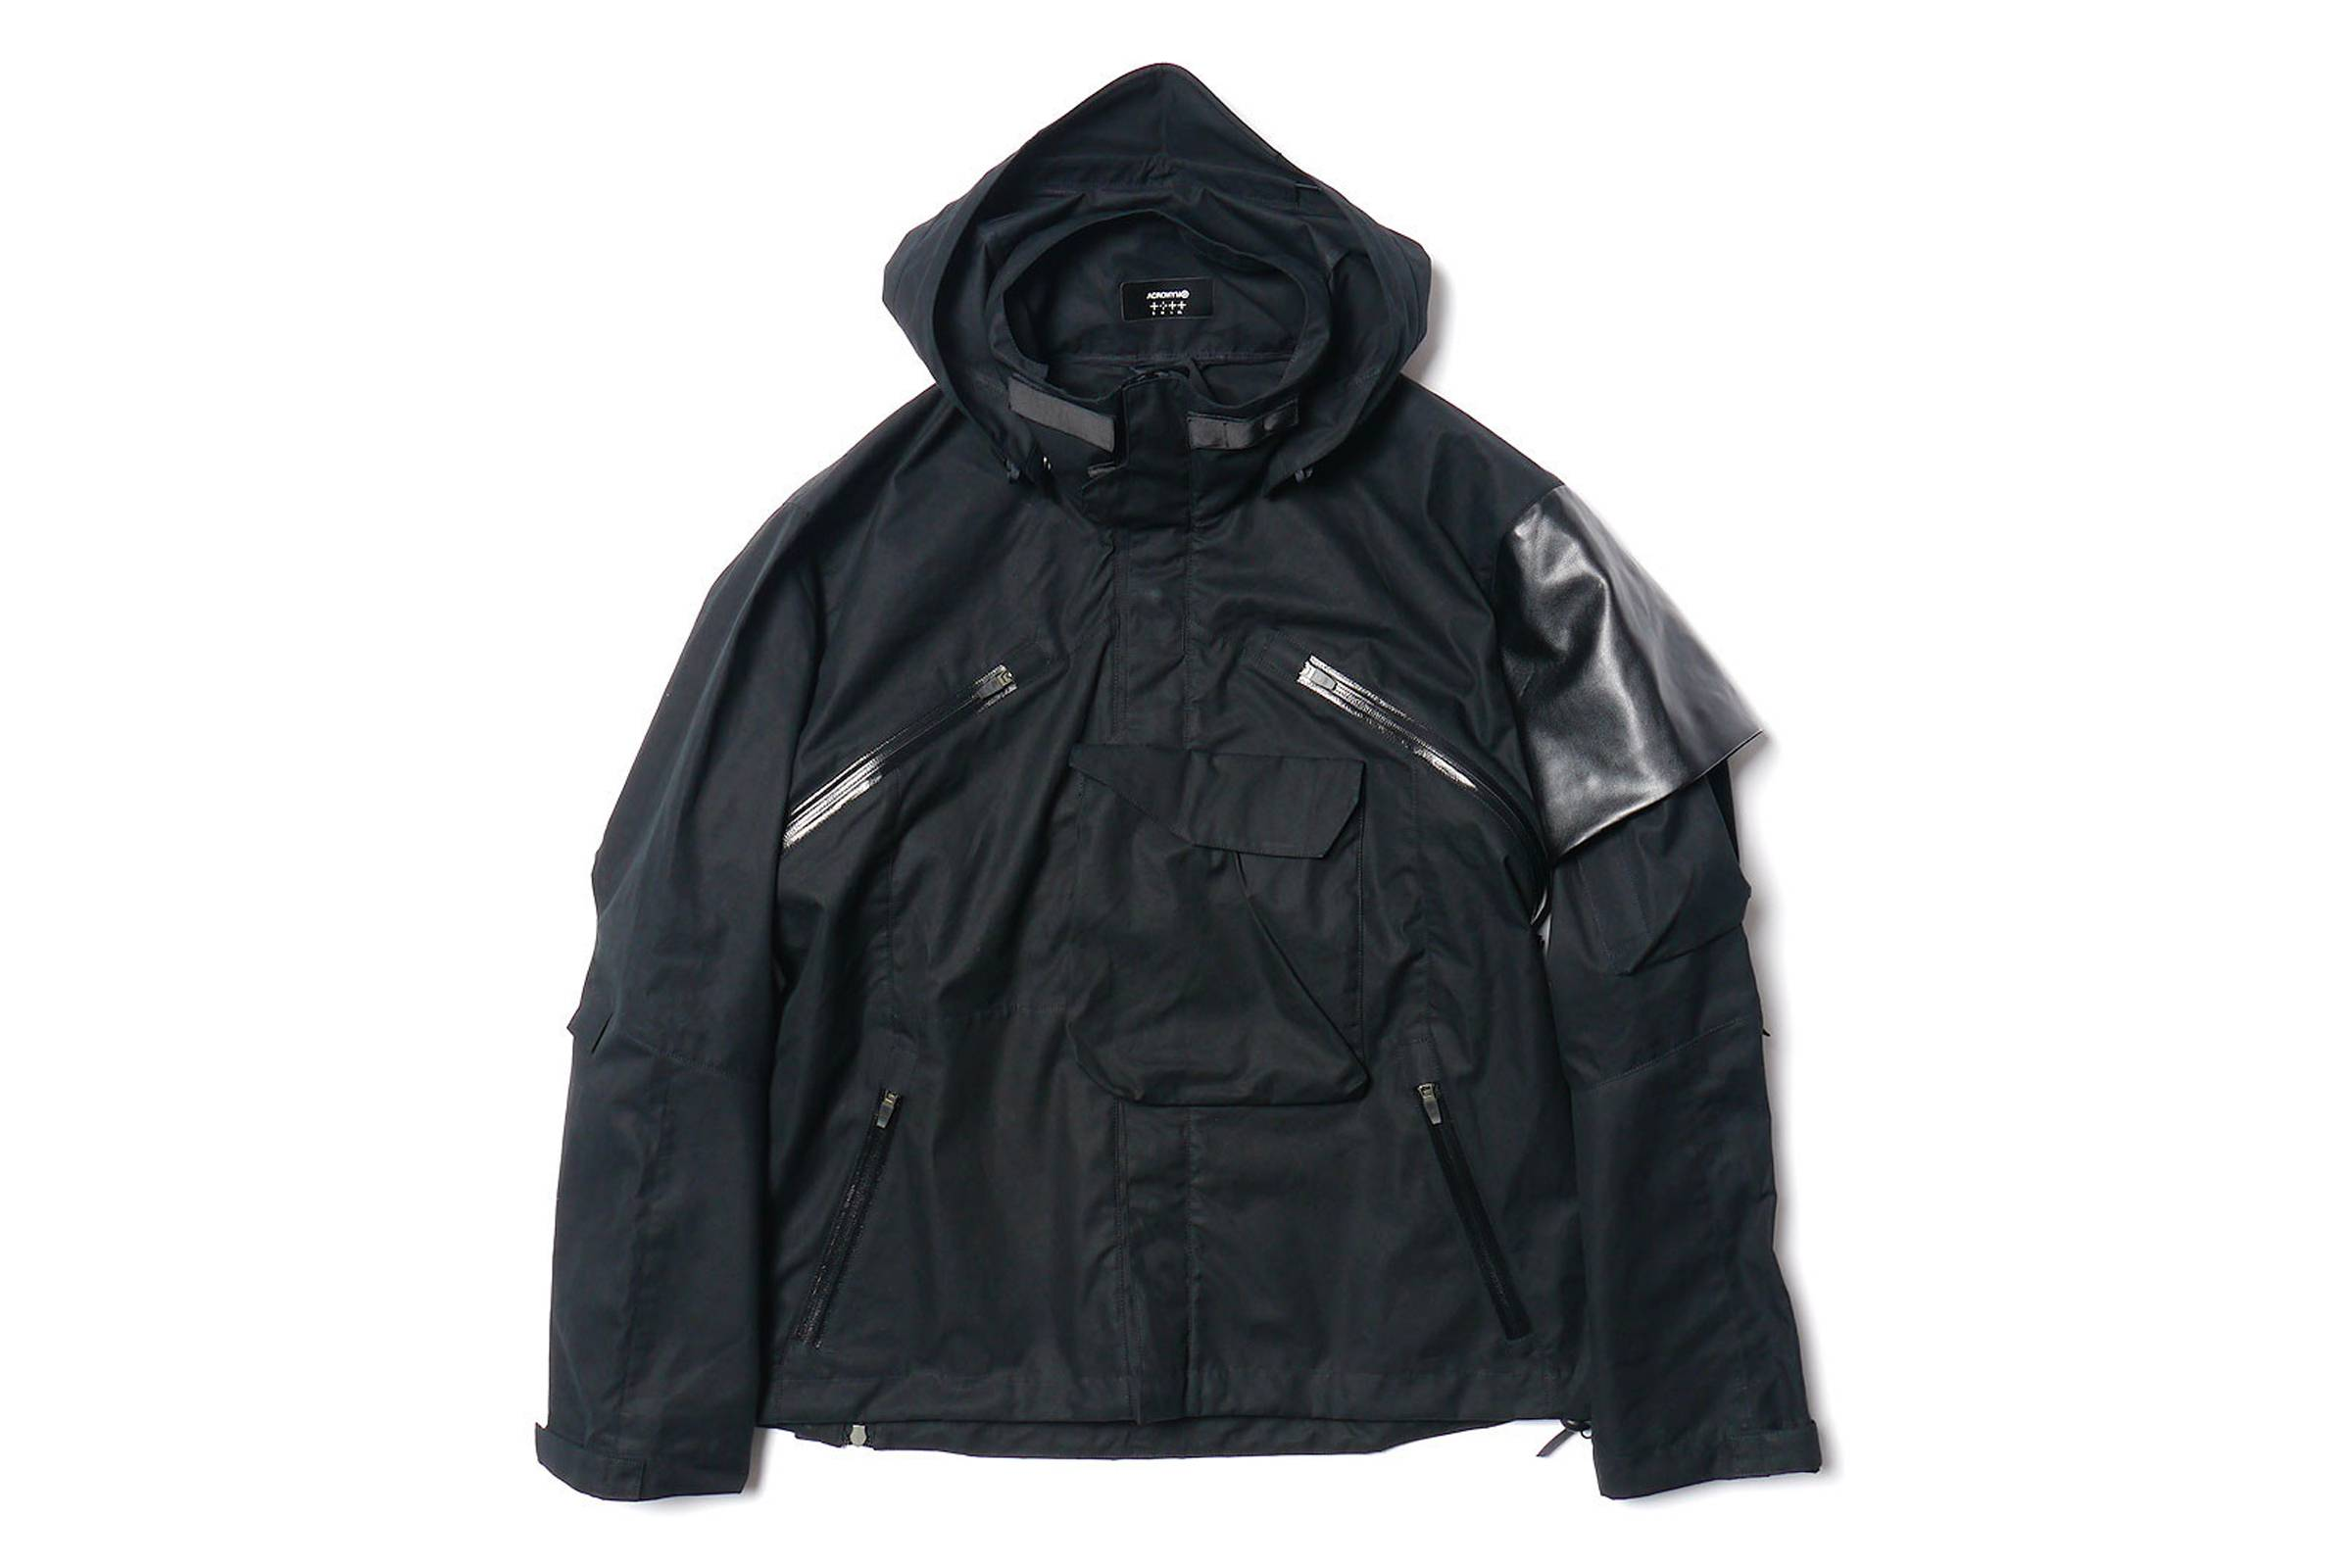 You See This Coat? Vol 1: Acronym J1A